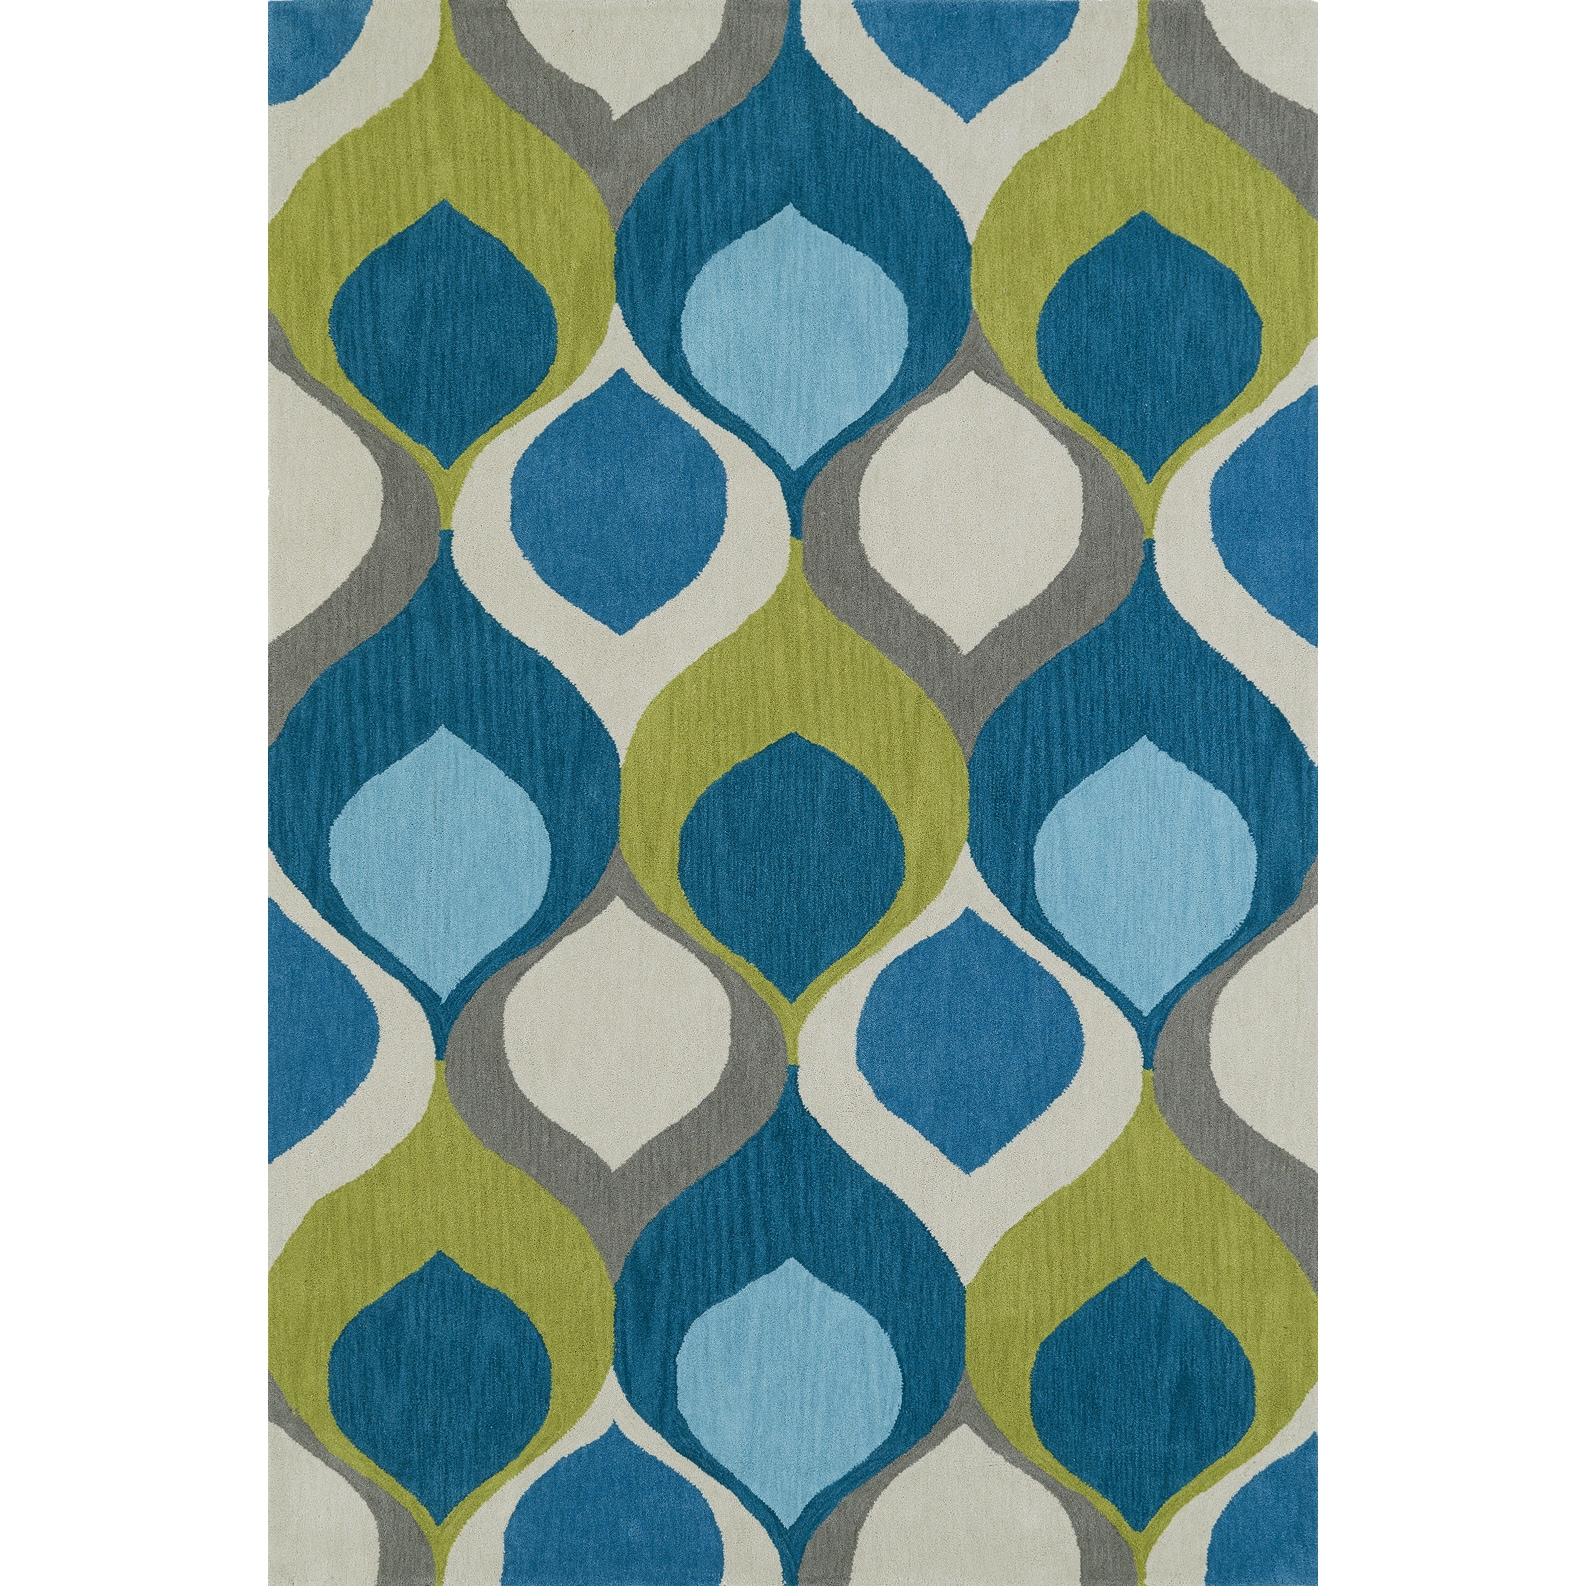 Malia Blue Green Hourgl Area Rug